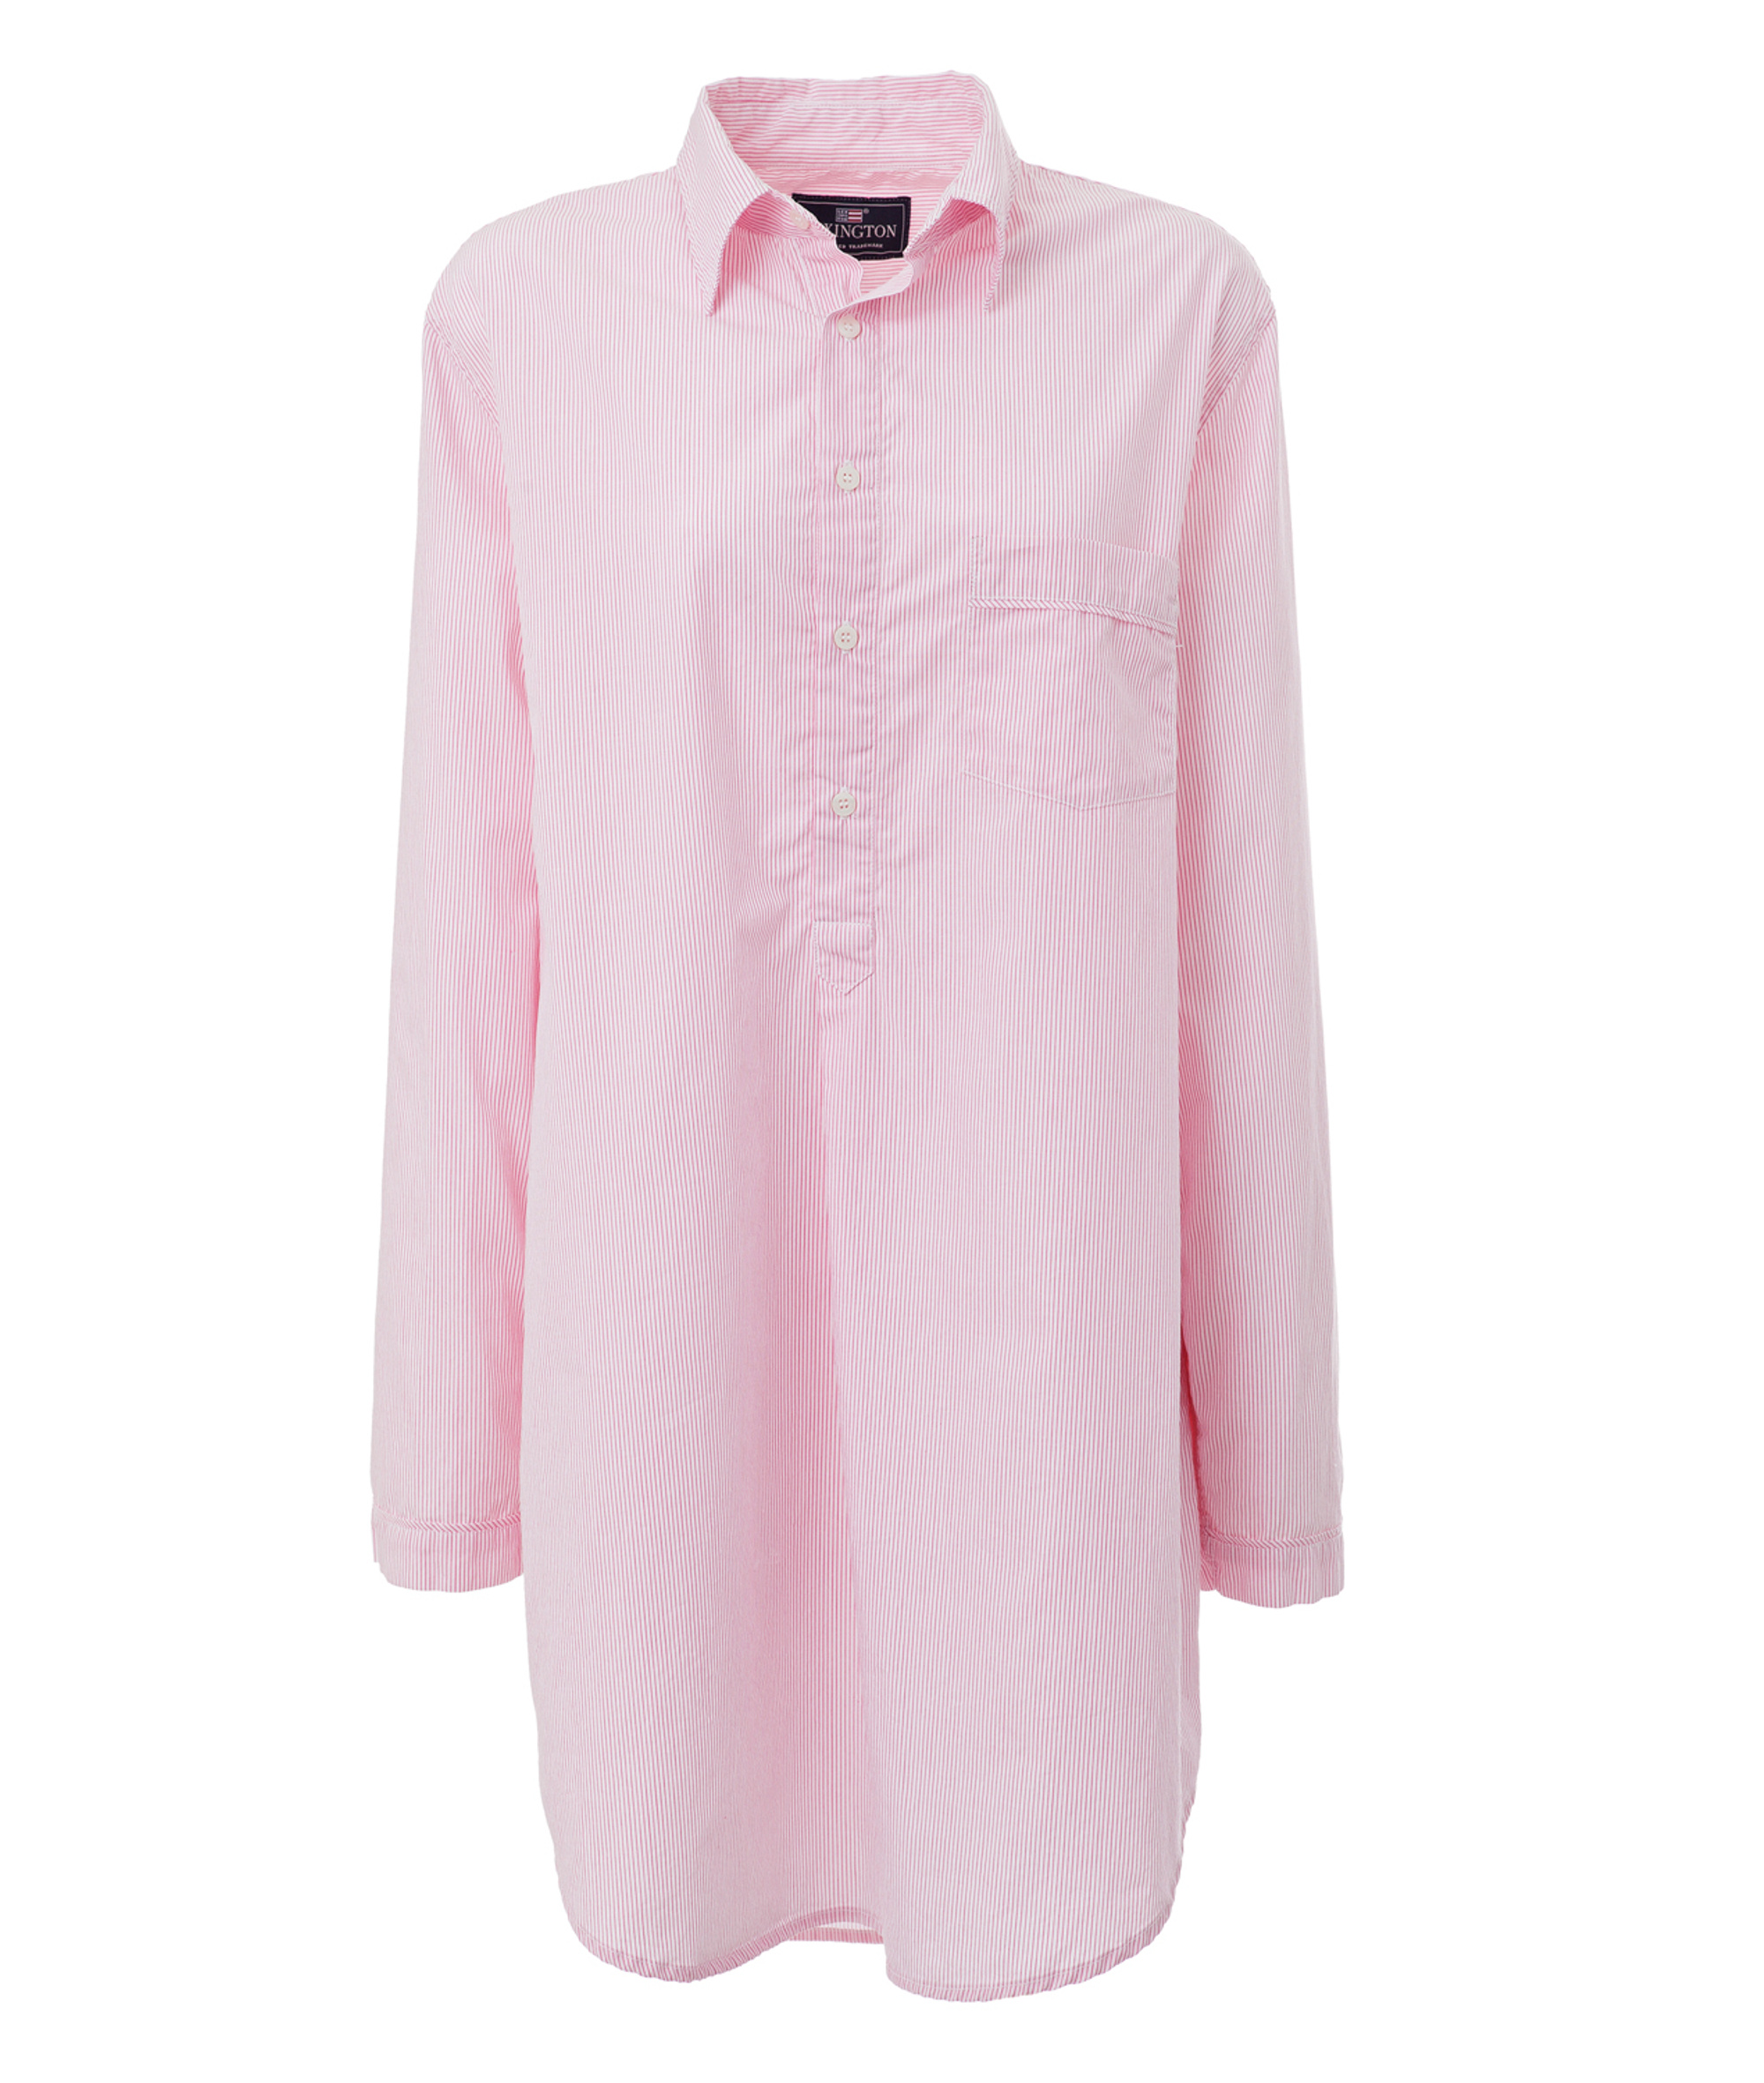 Icons Nightshirt, Pink/White